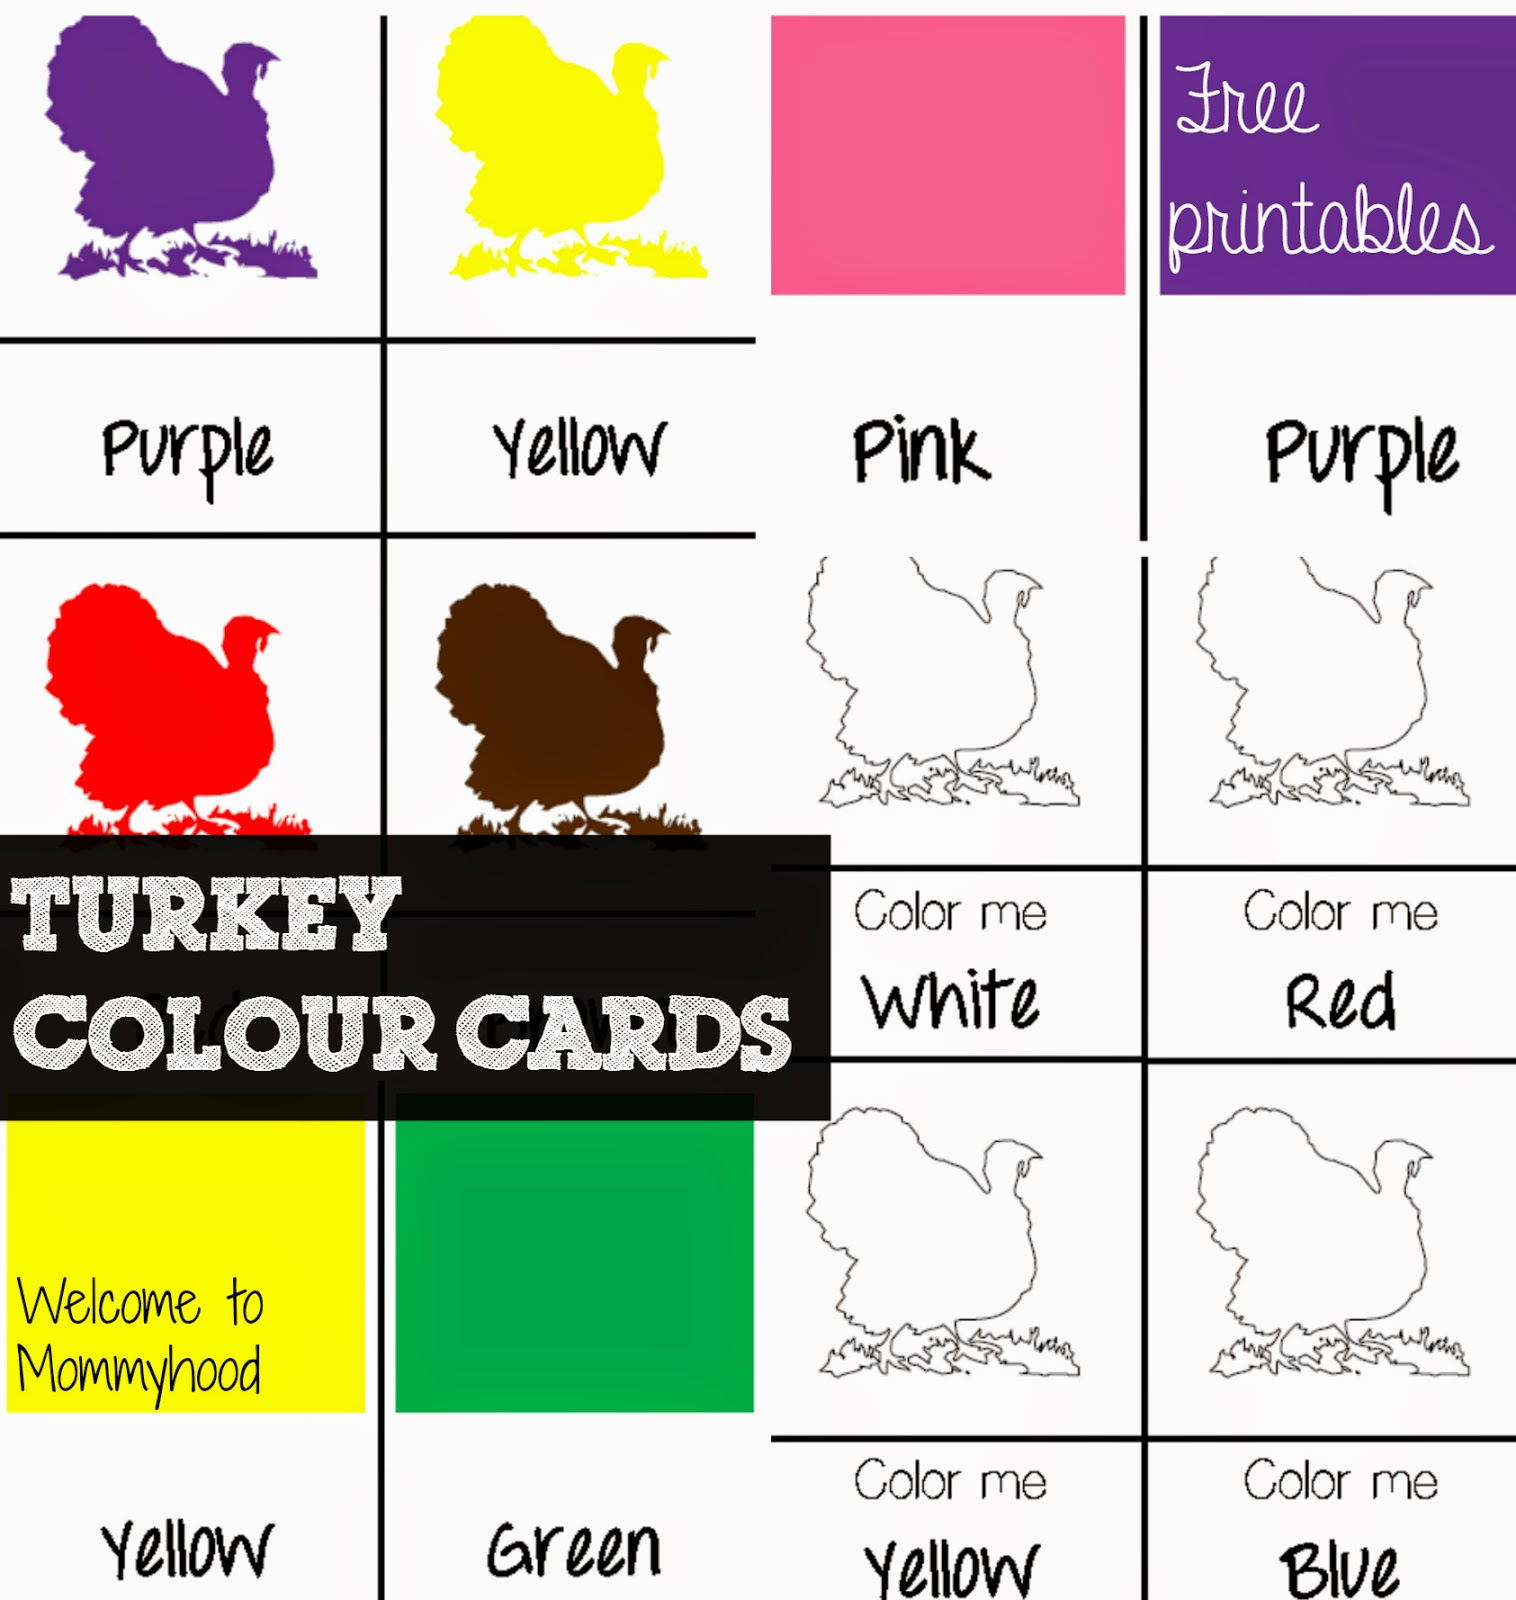 thanksgiving inspired color activities for toddlers and preschoolers welcome to mommyhood coloractivitiesfortoddlers - Color For Toddlers